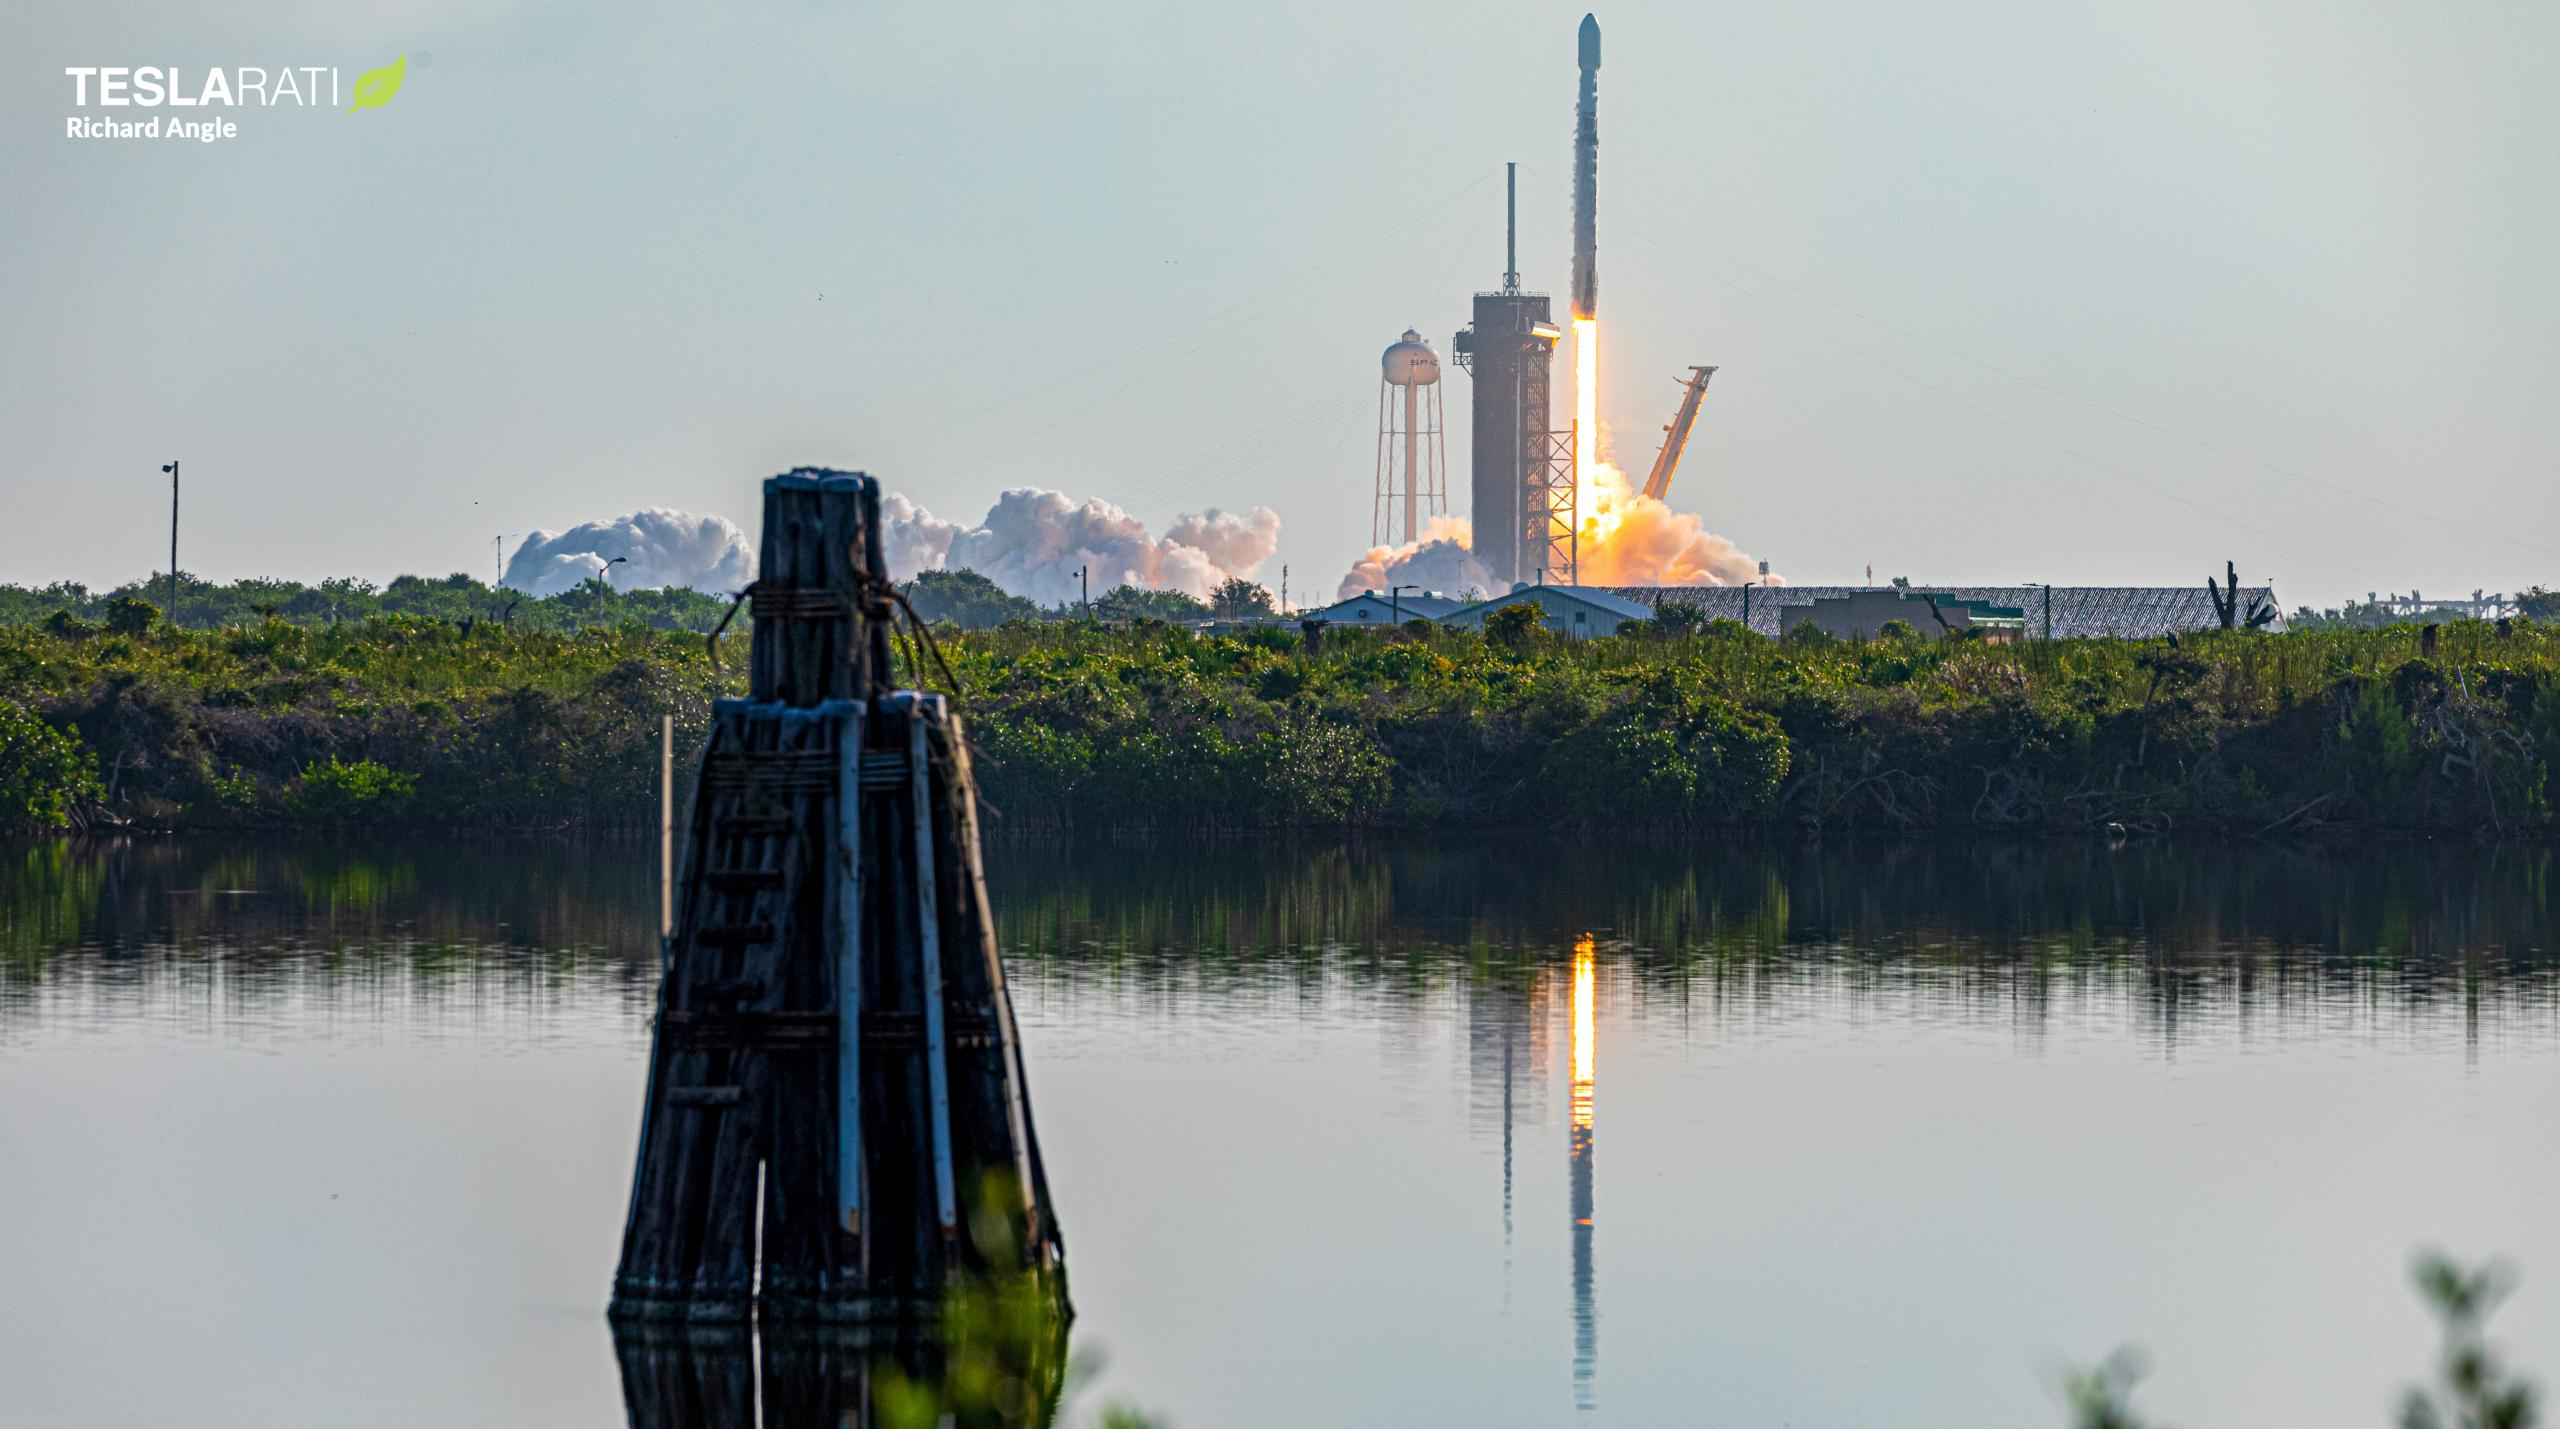 Starlink-11 Falcon 9 B1060 LC-39A 090320 (Richard Angle) launch 1 crop (c)